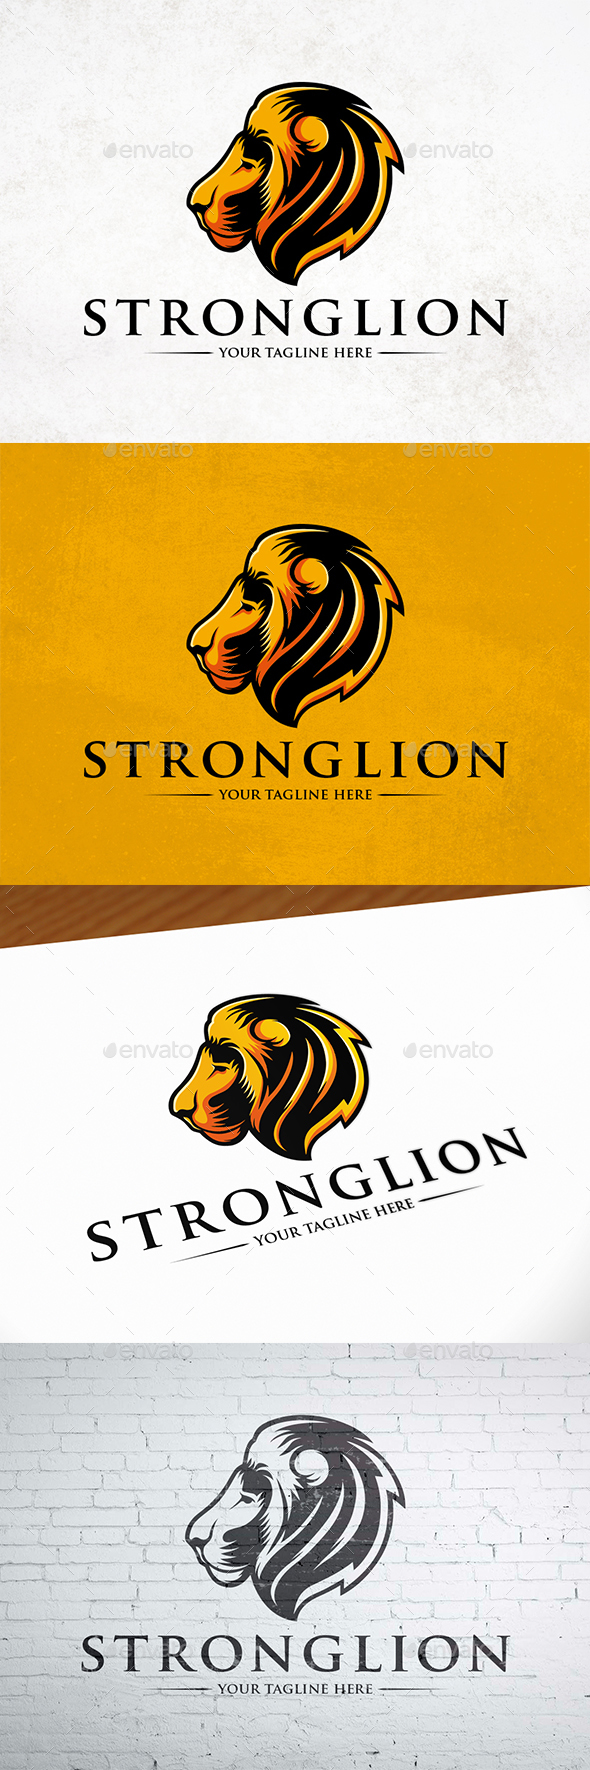 Strong Lion Logo Design - Animals Logo Templates